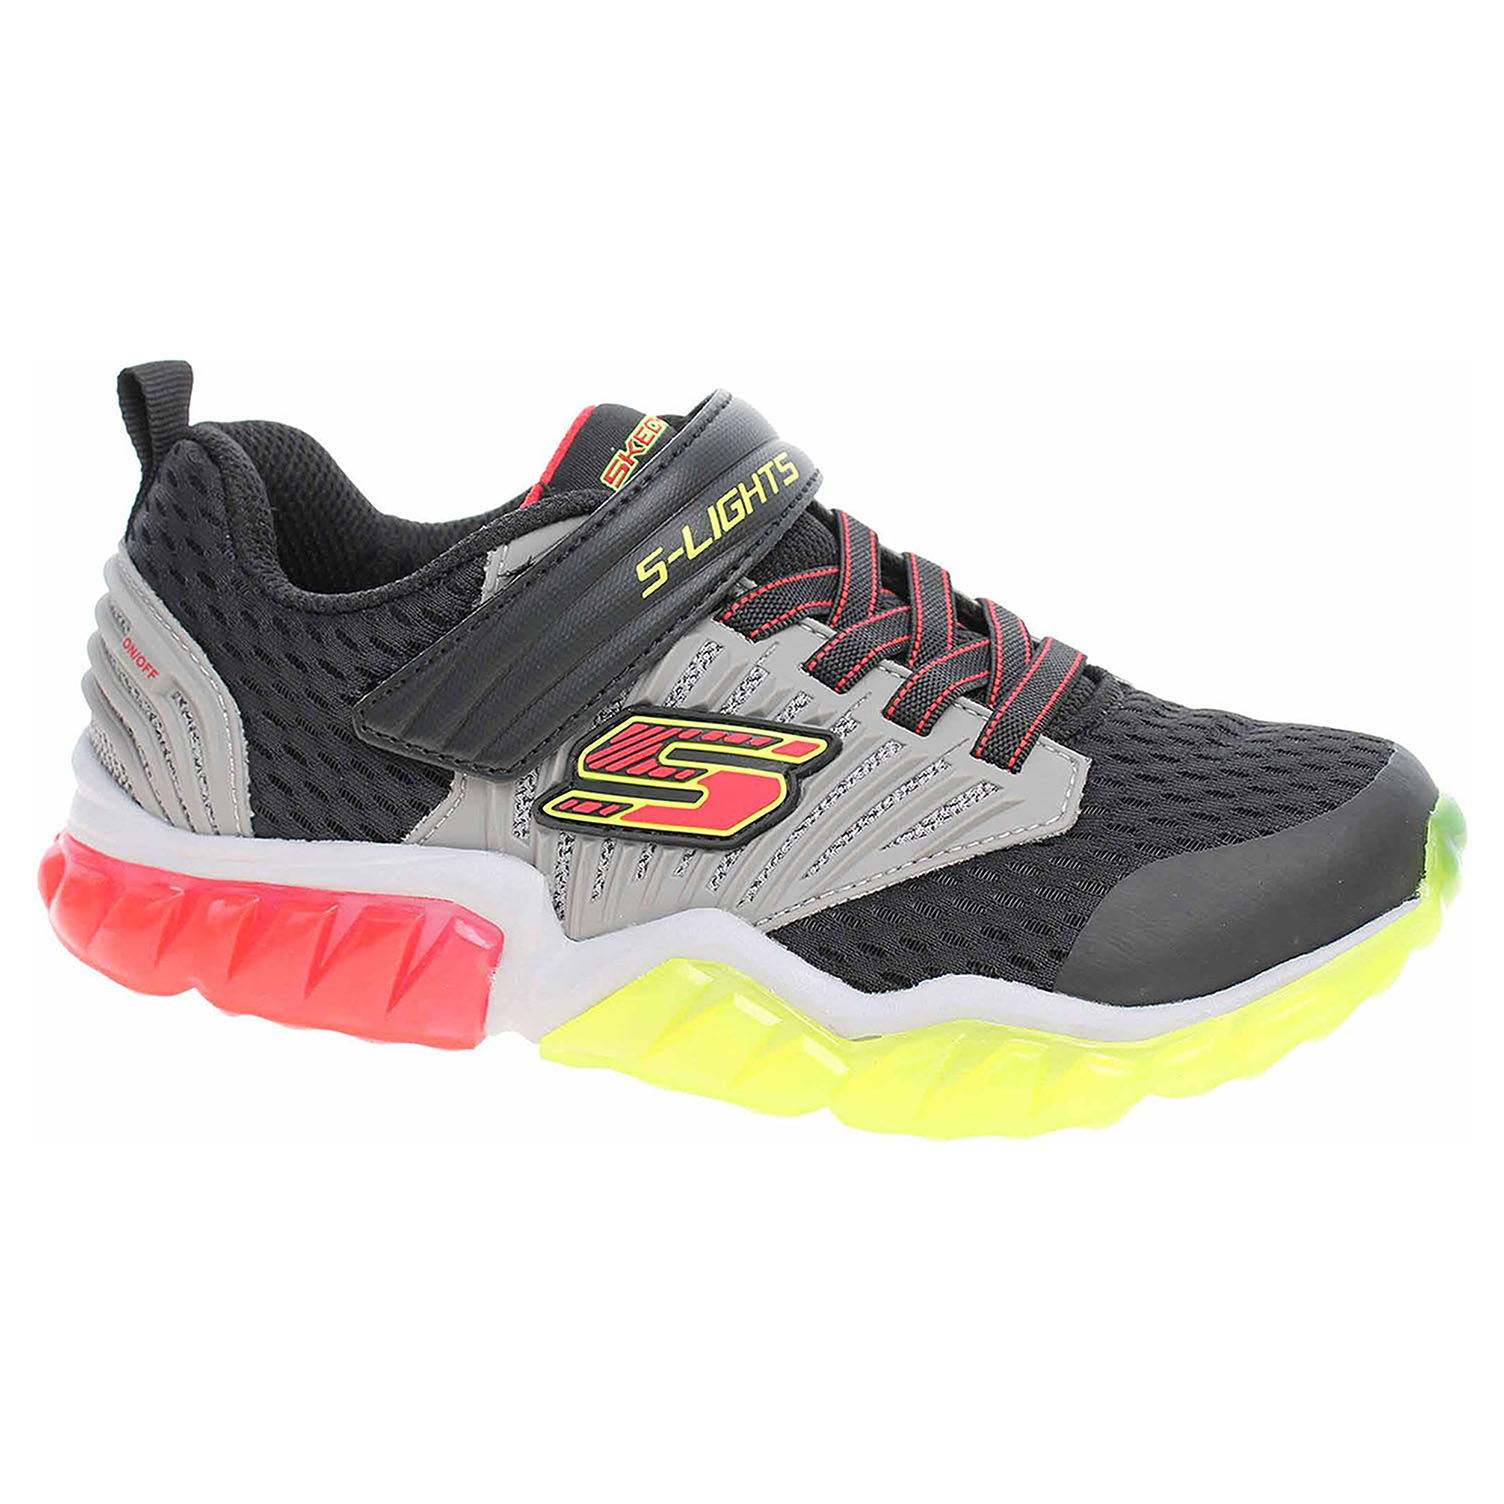 Skechers S Lights - Rapid Flash black-grey-red